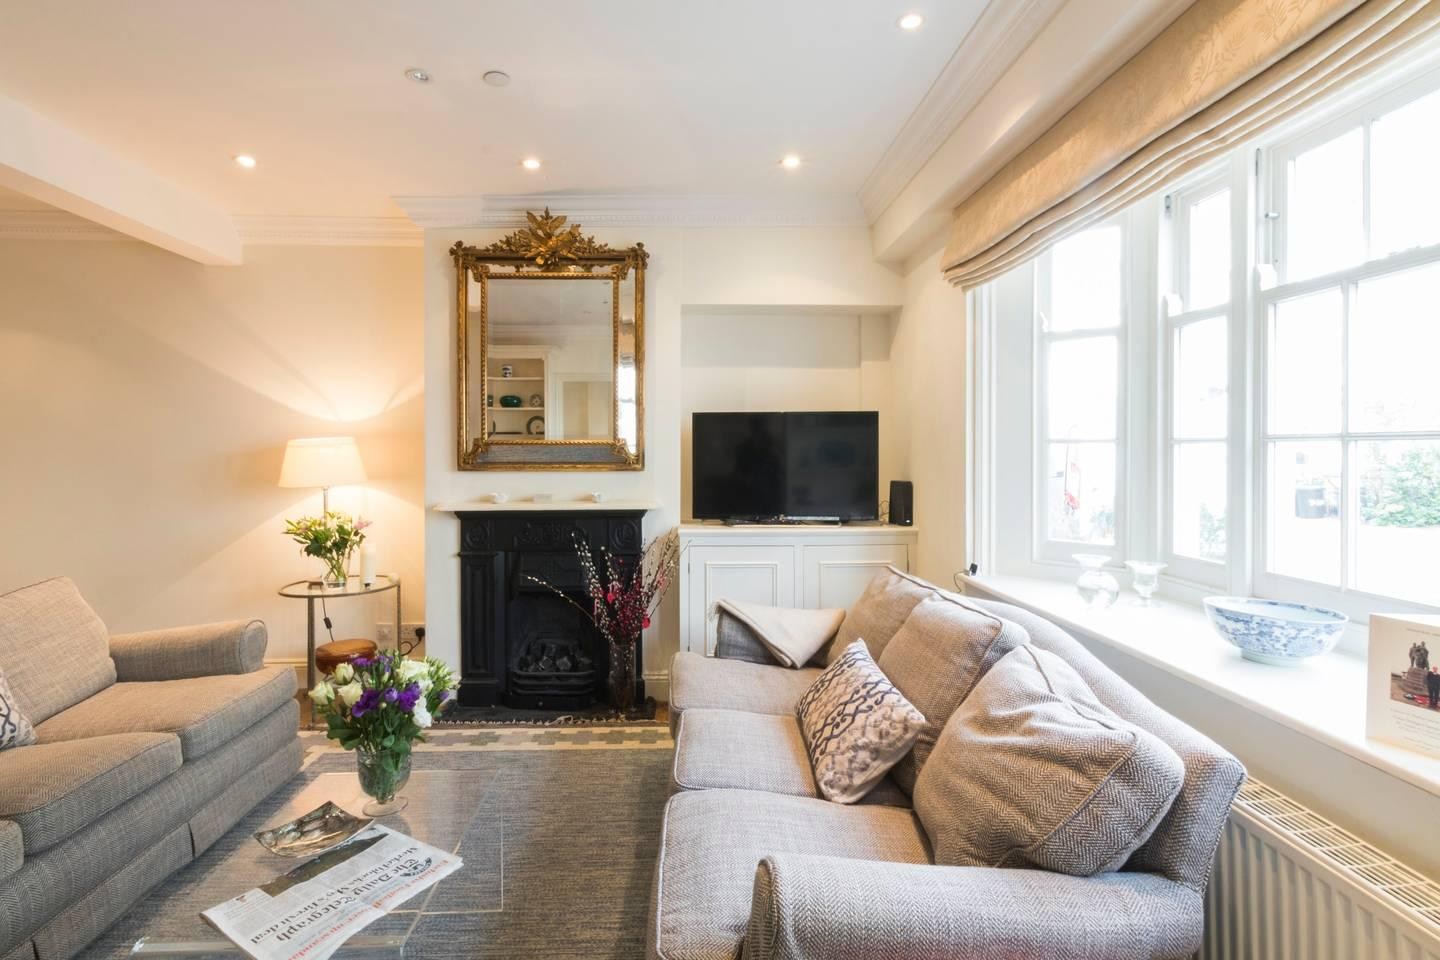 Property Image 2 - Welcoming Home with Warm Furnishings